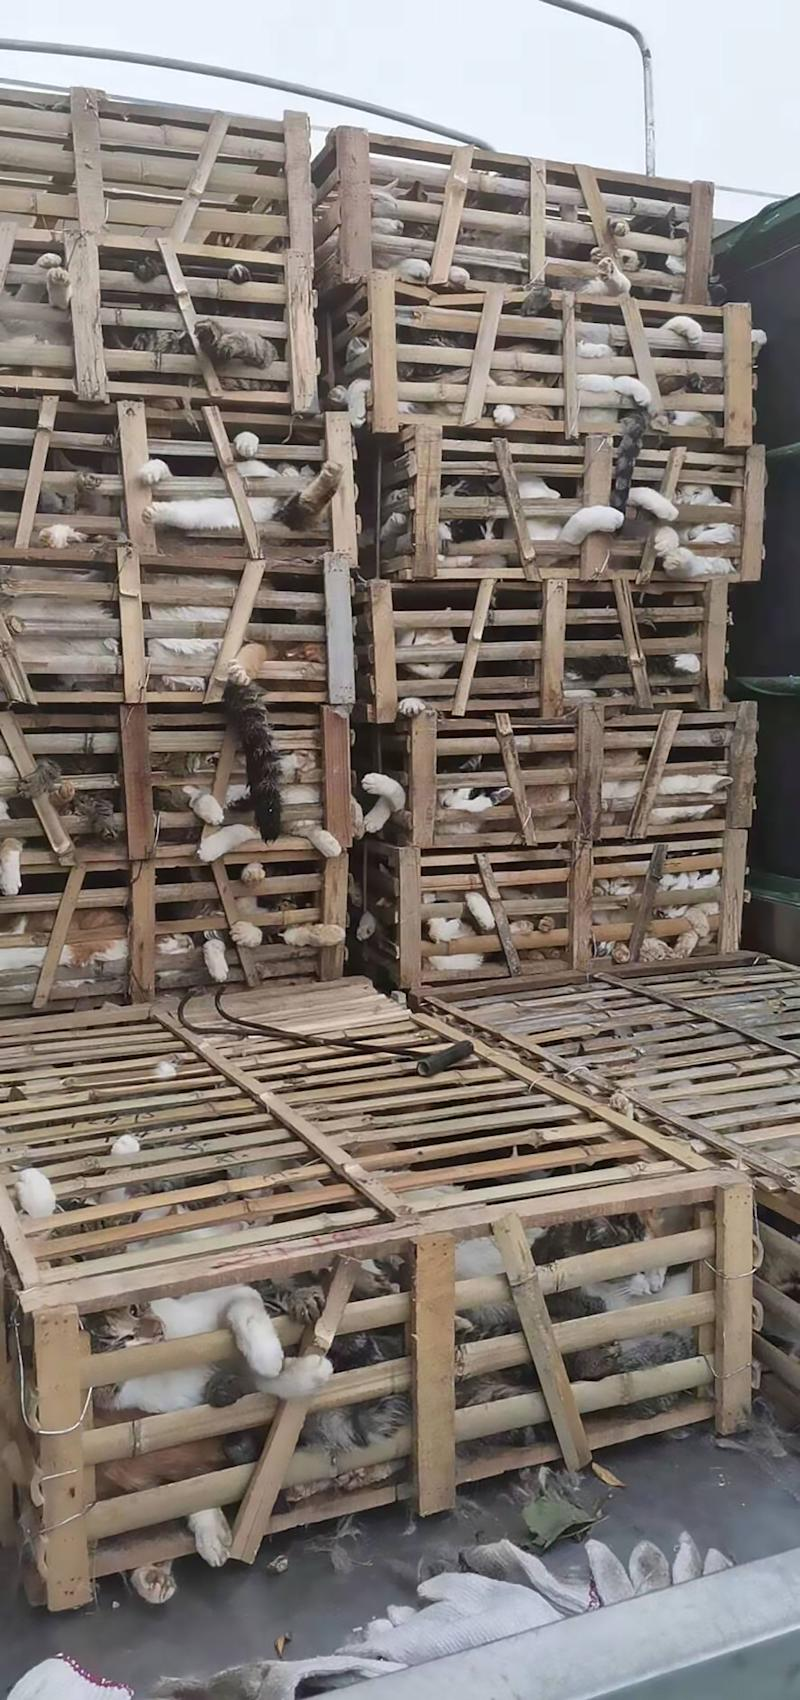 A truck carrying 307 cats destined for restaurants in wooden cages in China.